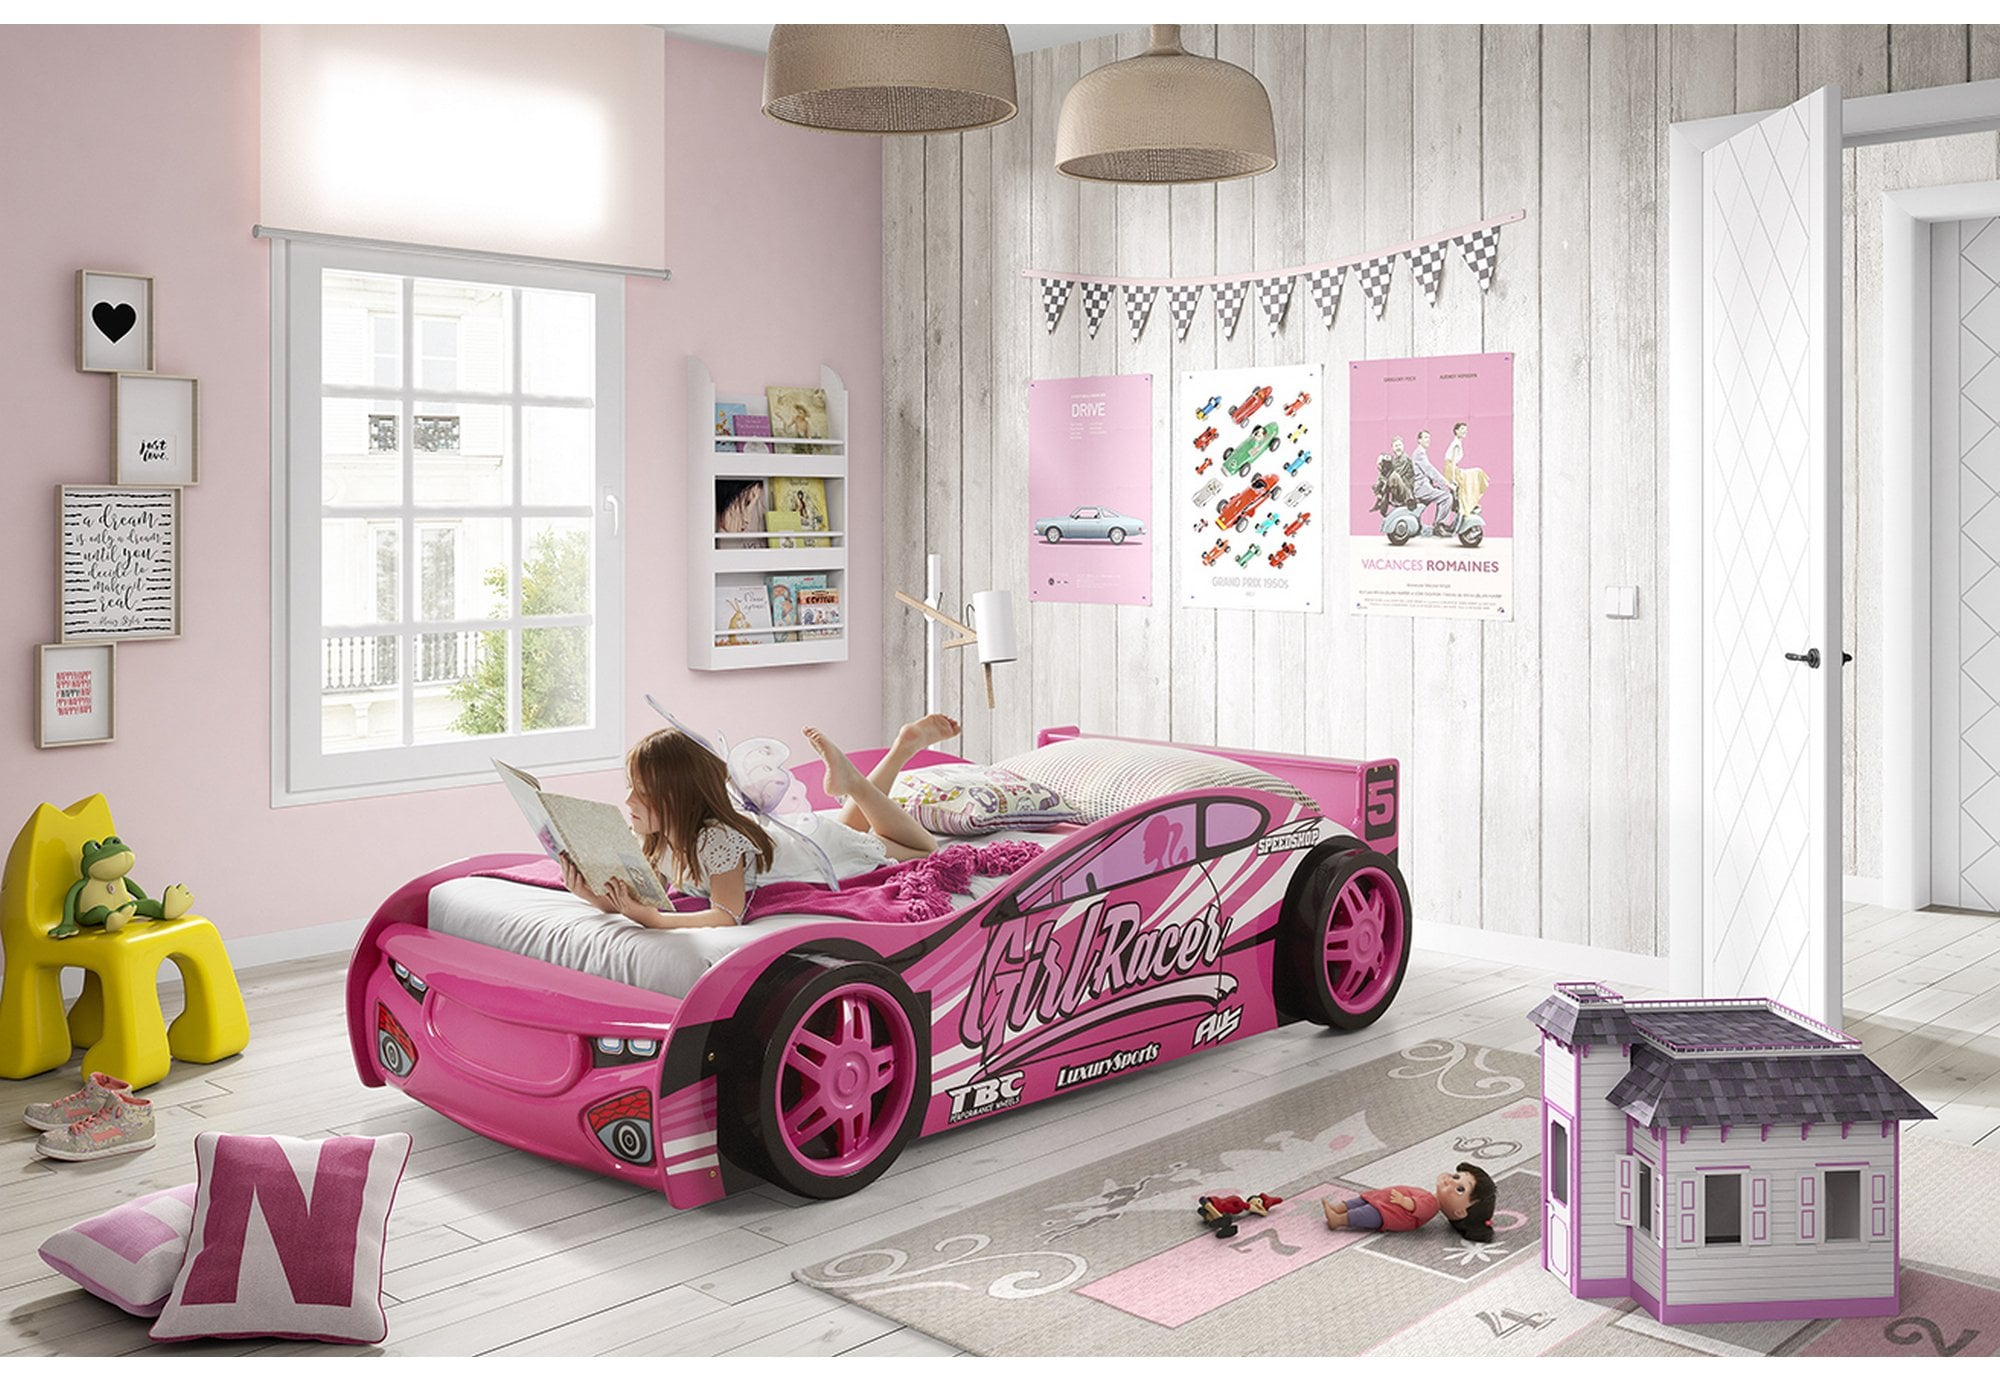 Picture of: Artisan Bed Company Artisan 3ft Single Girls Sports Car Bed Beds From Beds 4 Less Uk